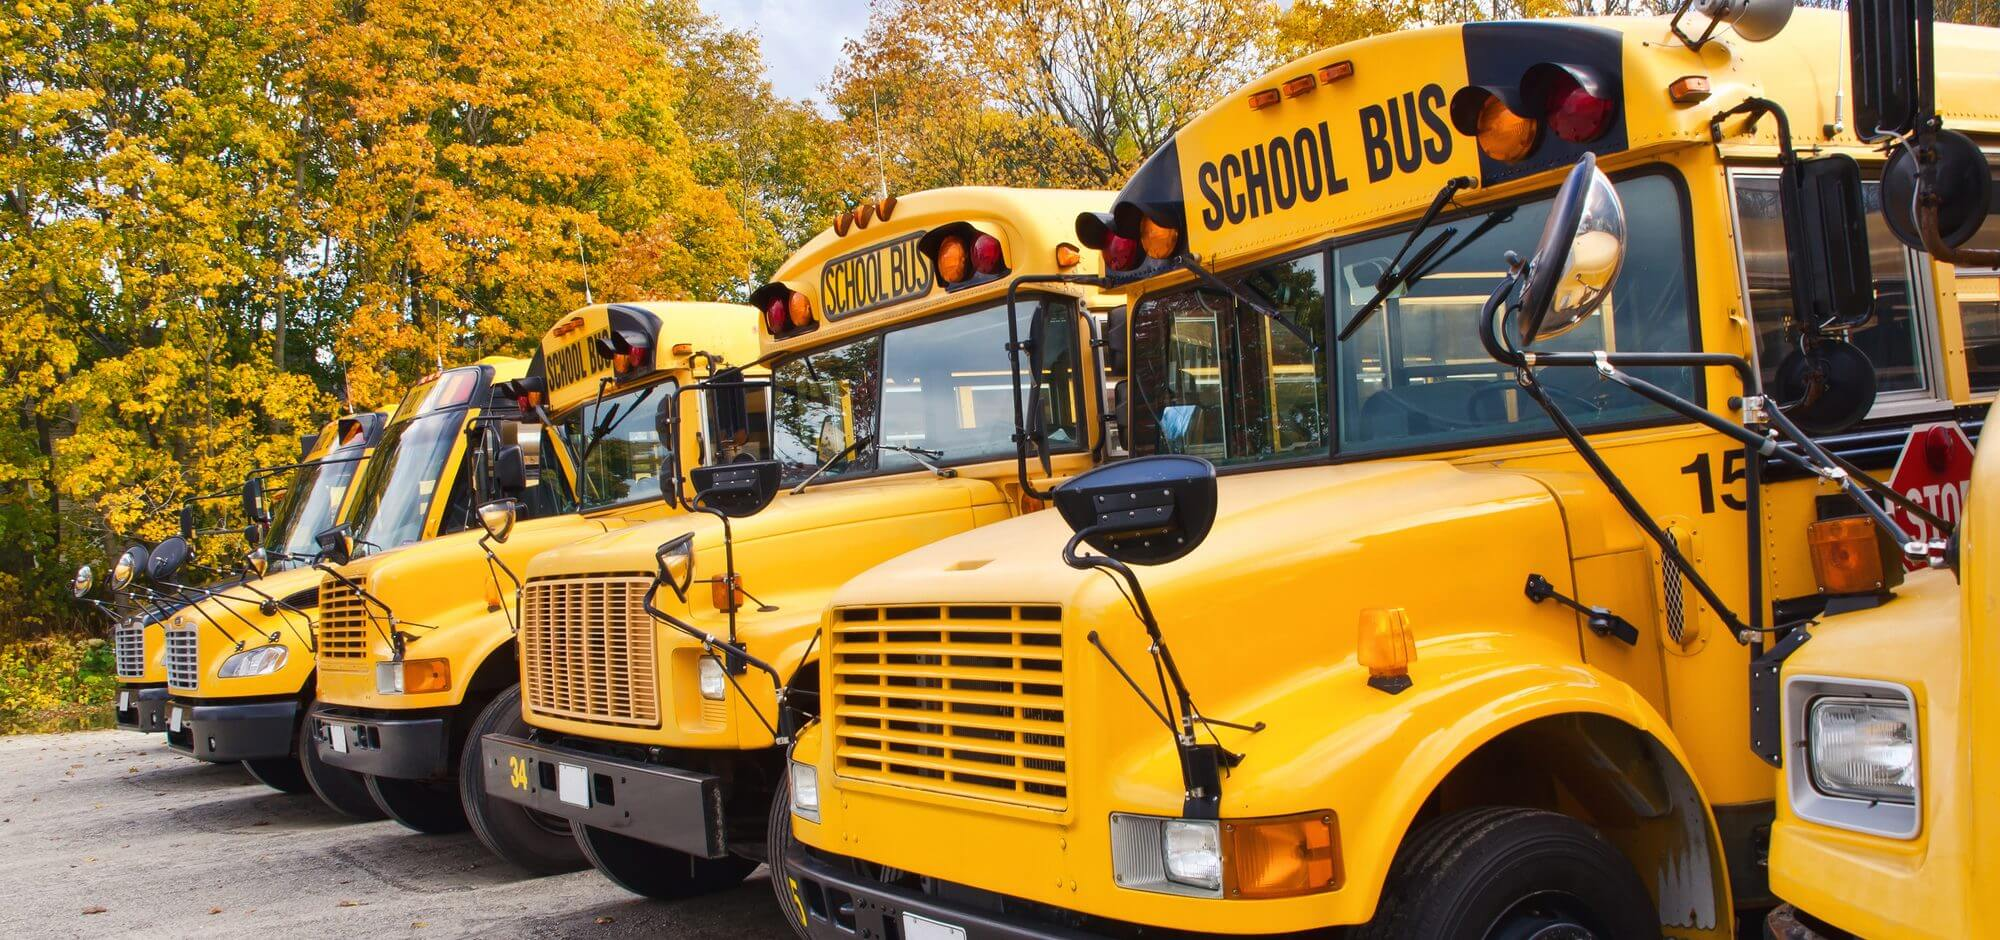 monitoring children in school bus